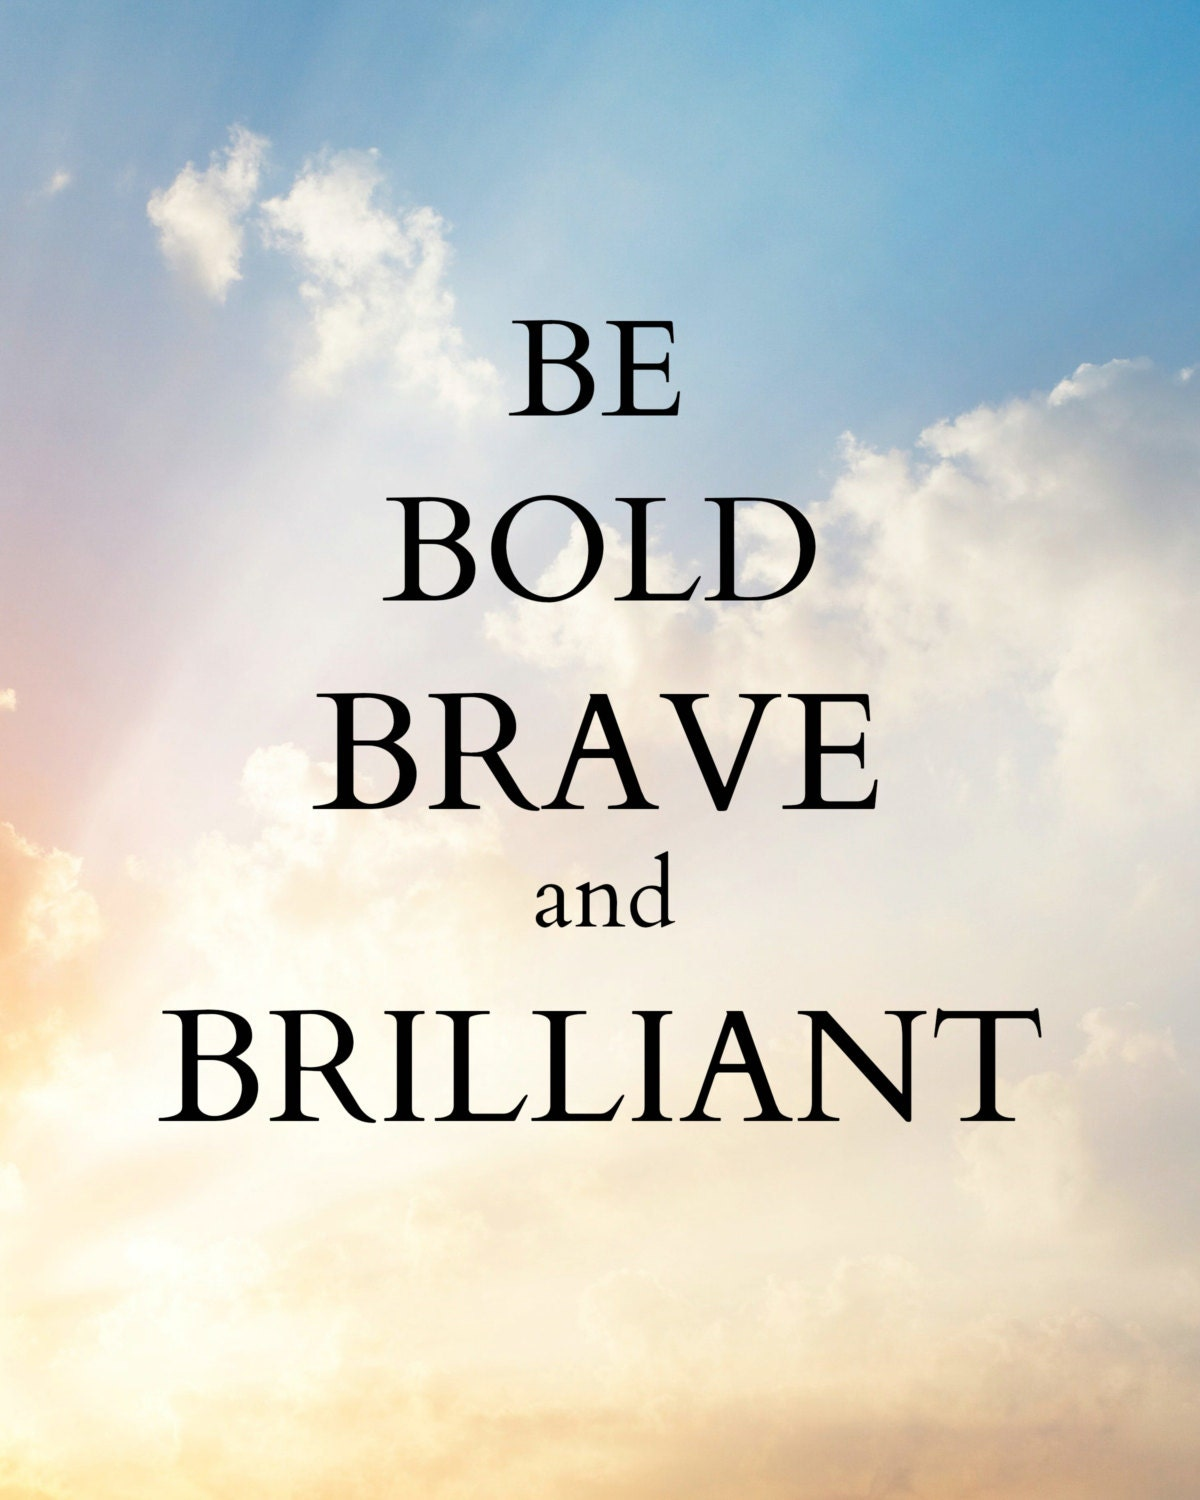 Brilliant Cute Quotes Download: Be Bold Brave And Brilliant Digital Download Art Quotes